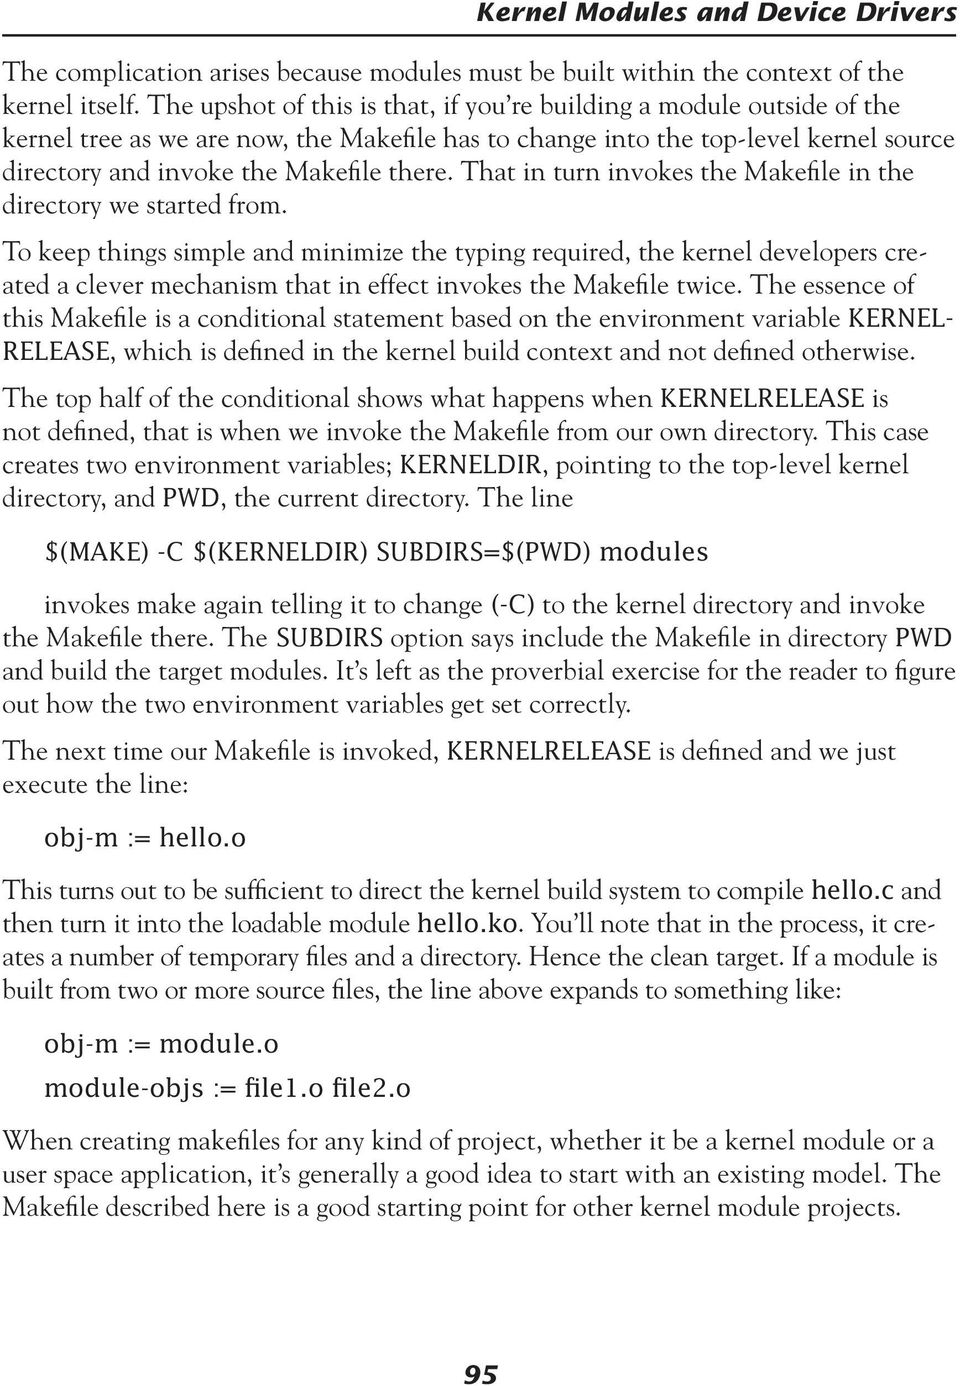 Kernel Modules and Device Drivers - PDF